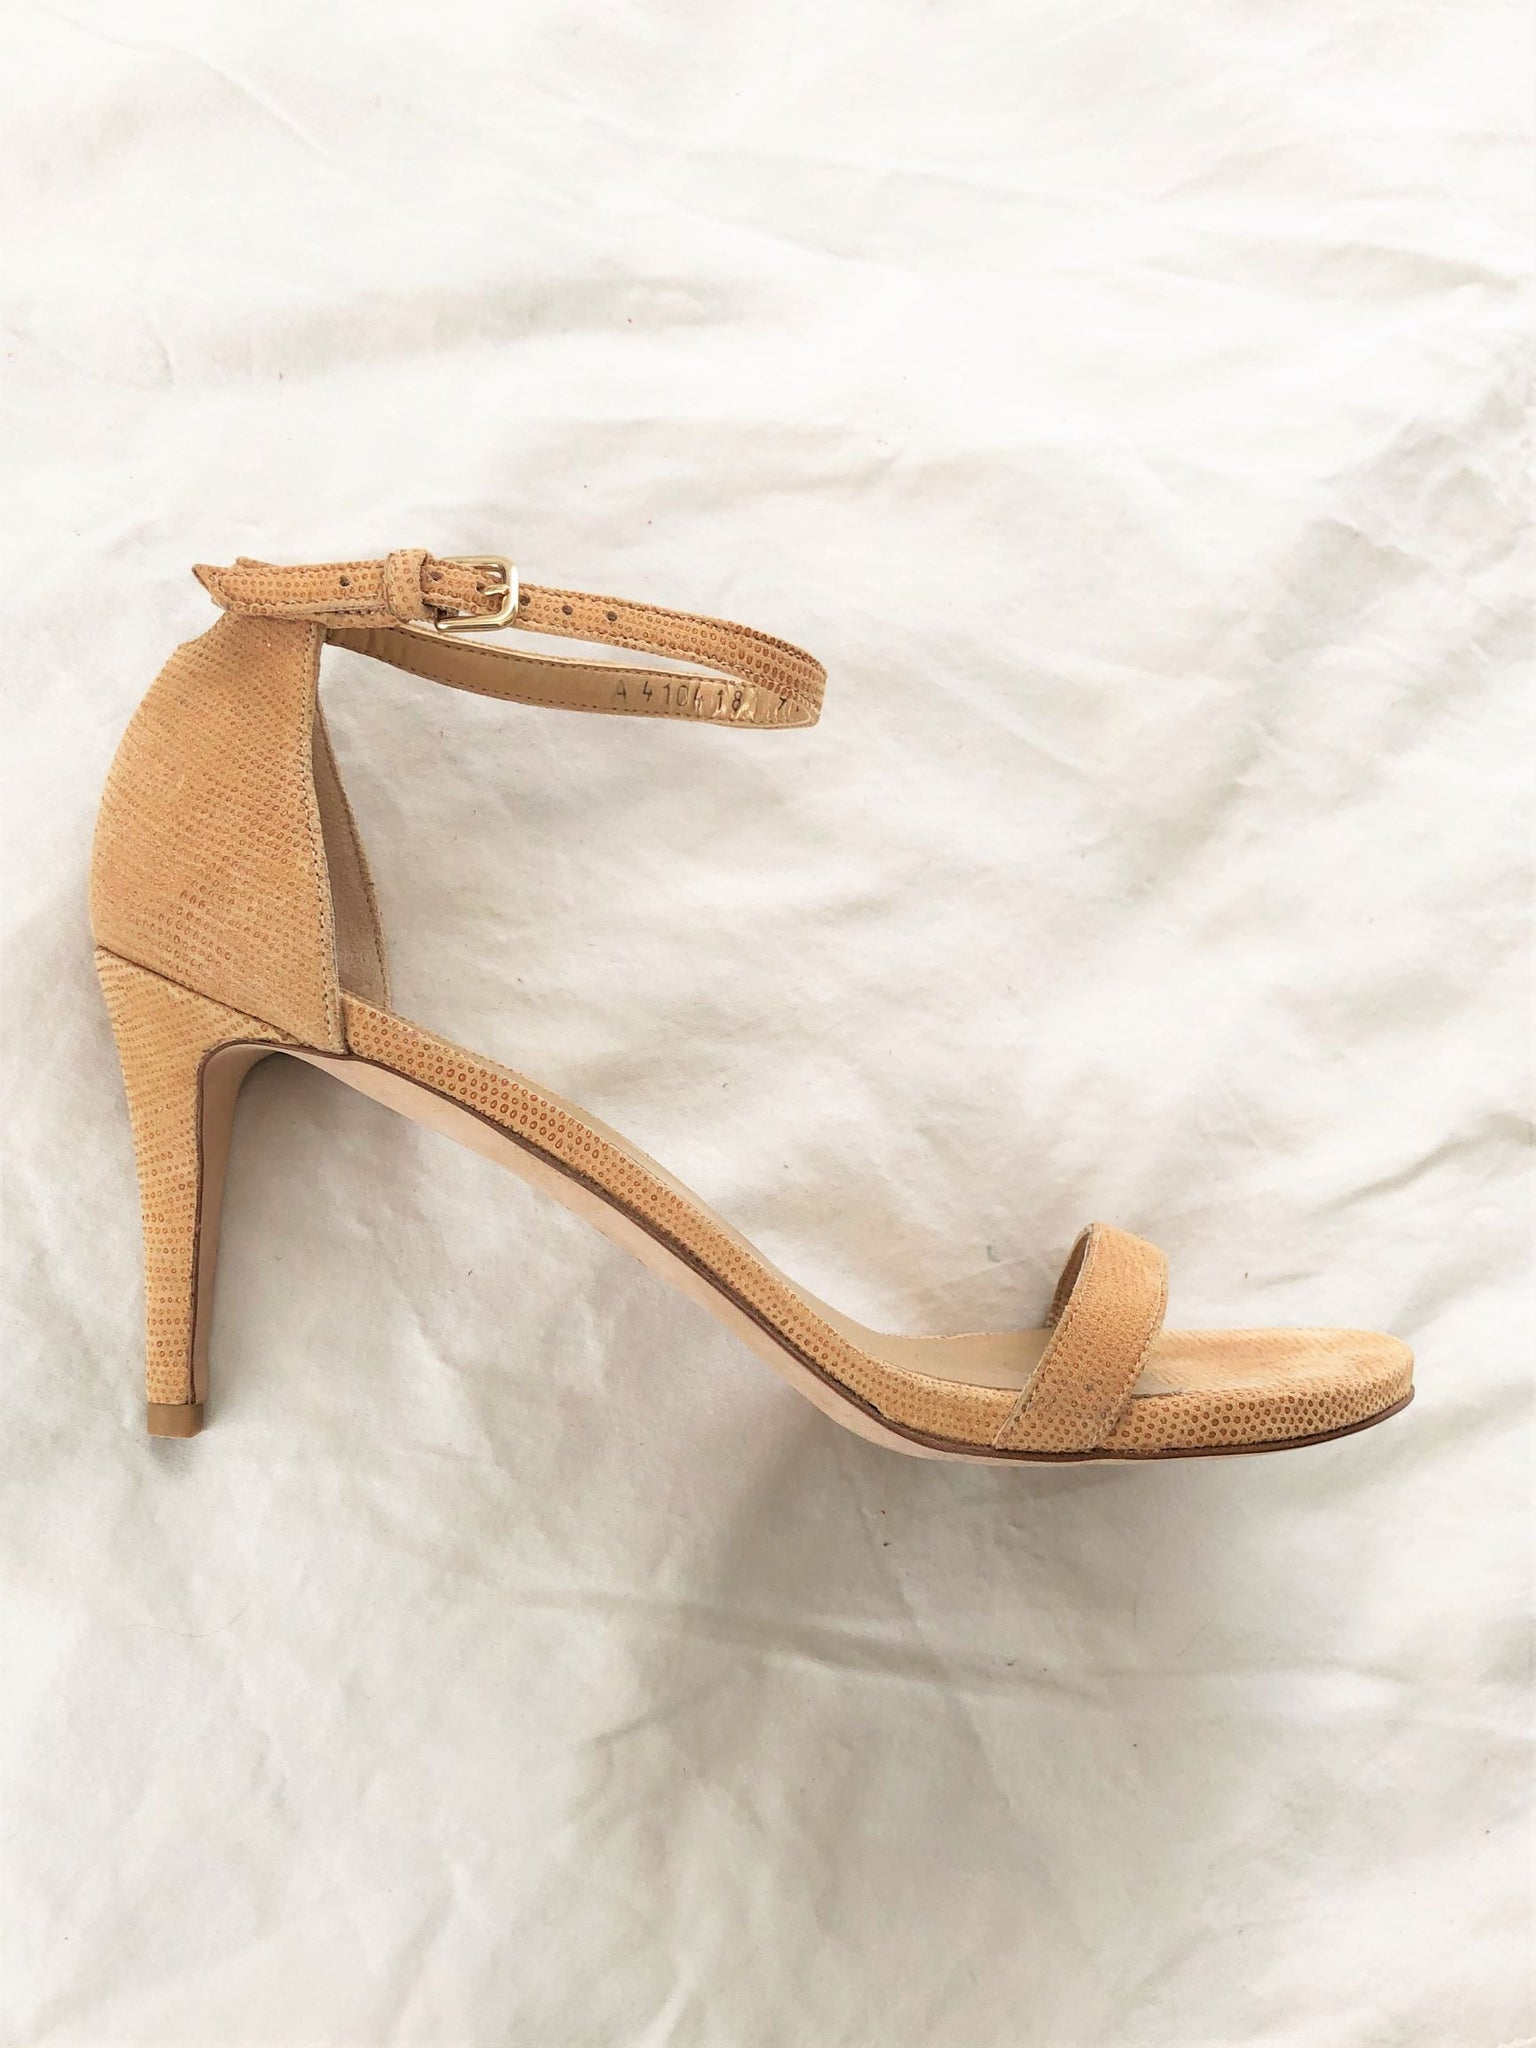 Stuart Weitzman Size 9.5 Nude Leather Strappy Sandals